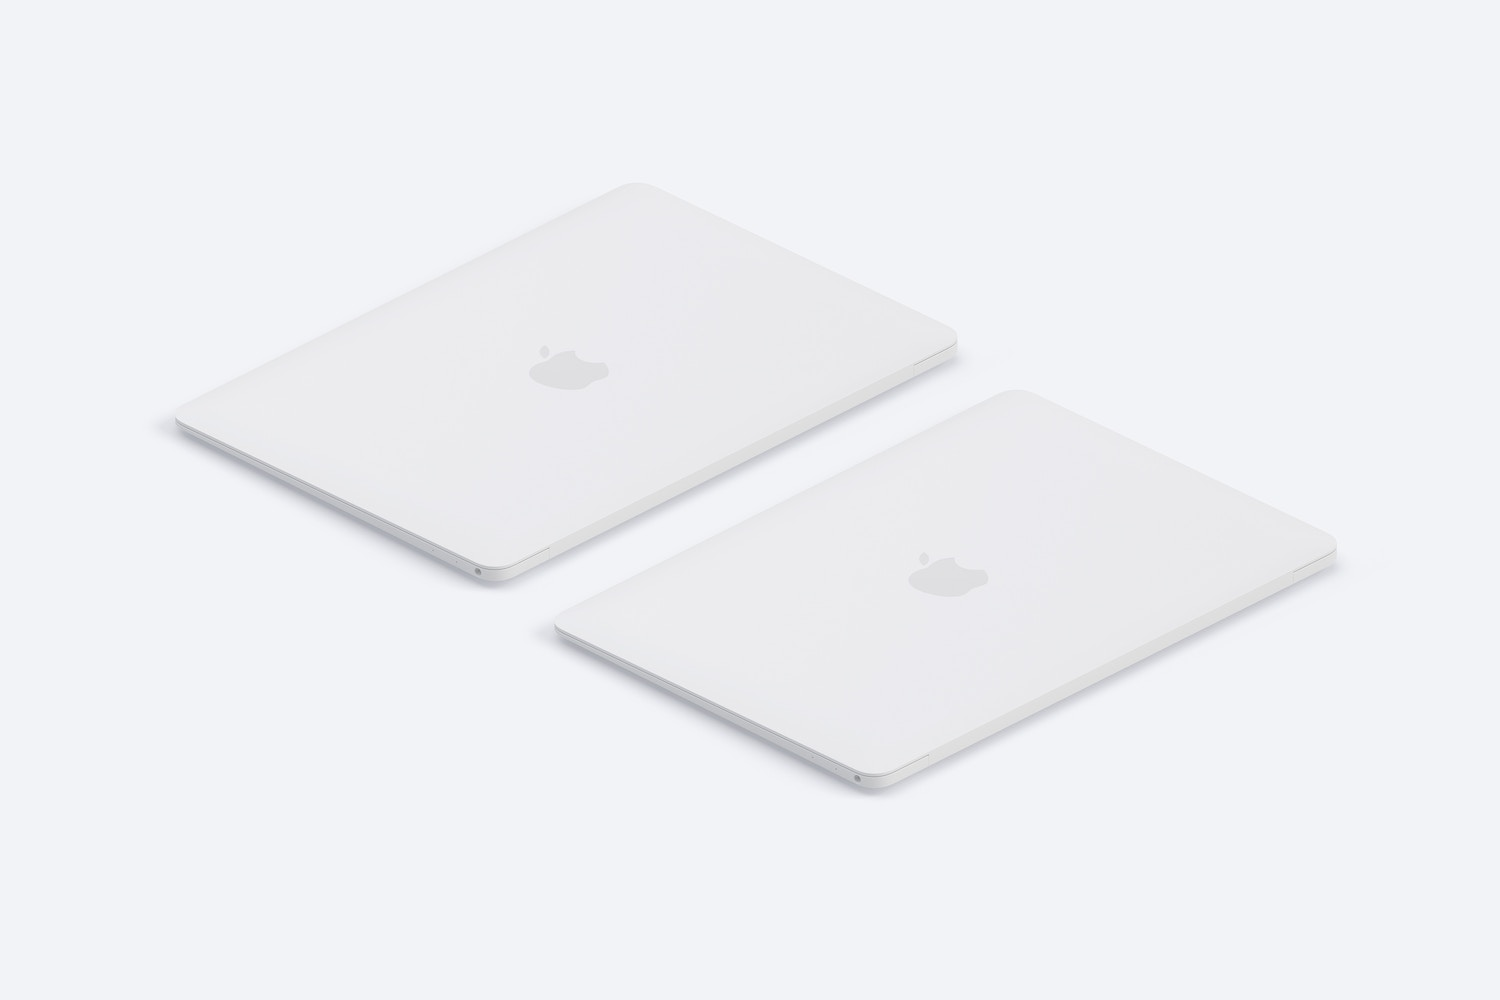 Clay MacBook Mockup, Isometric Left View 03 (3) by Original Mockups on Original Mockups